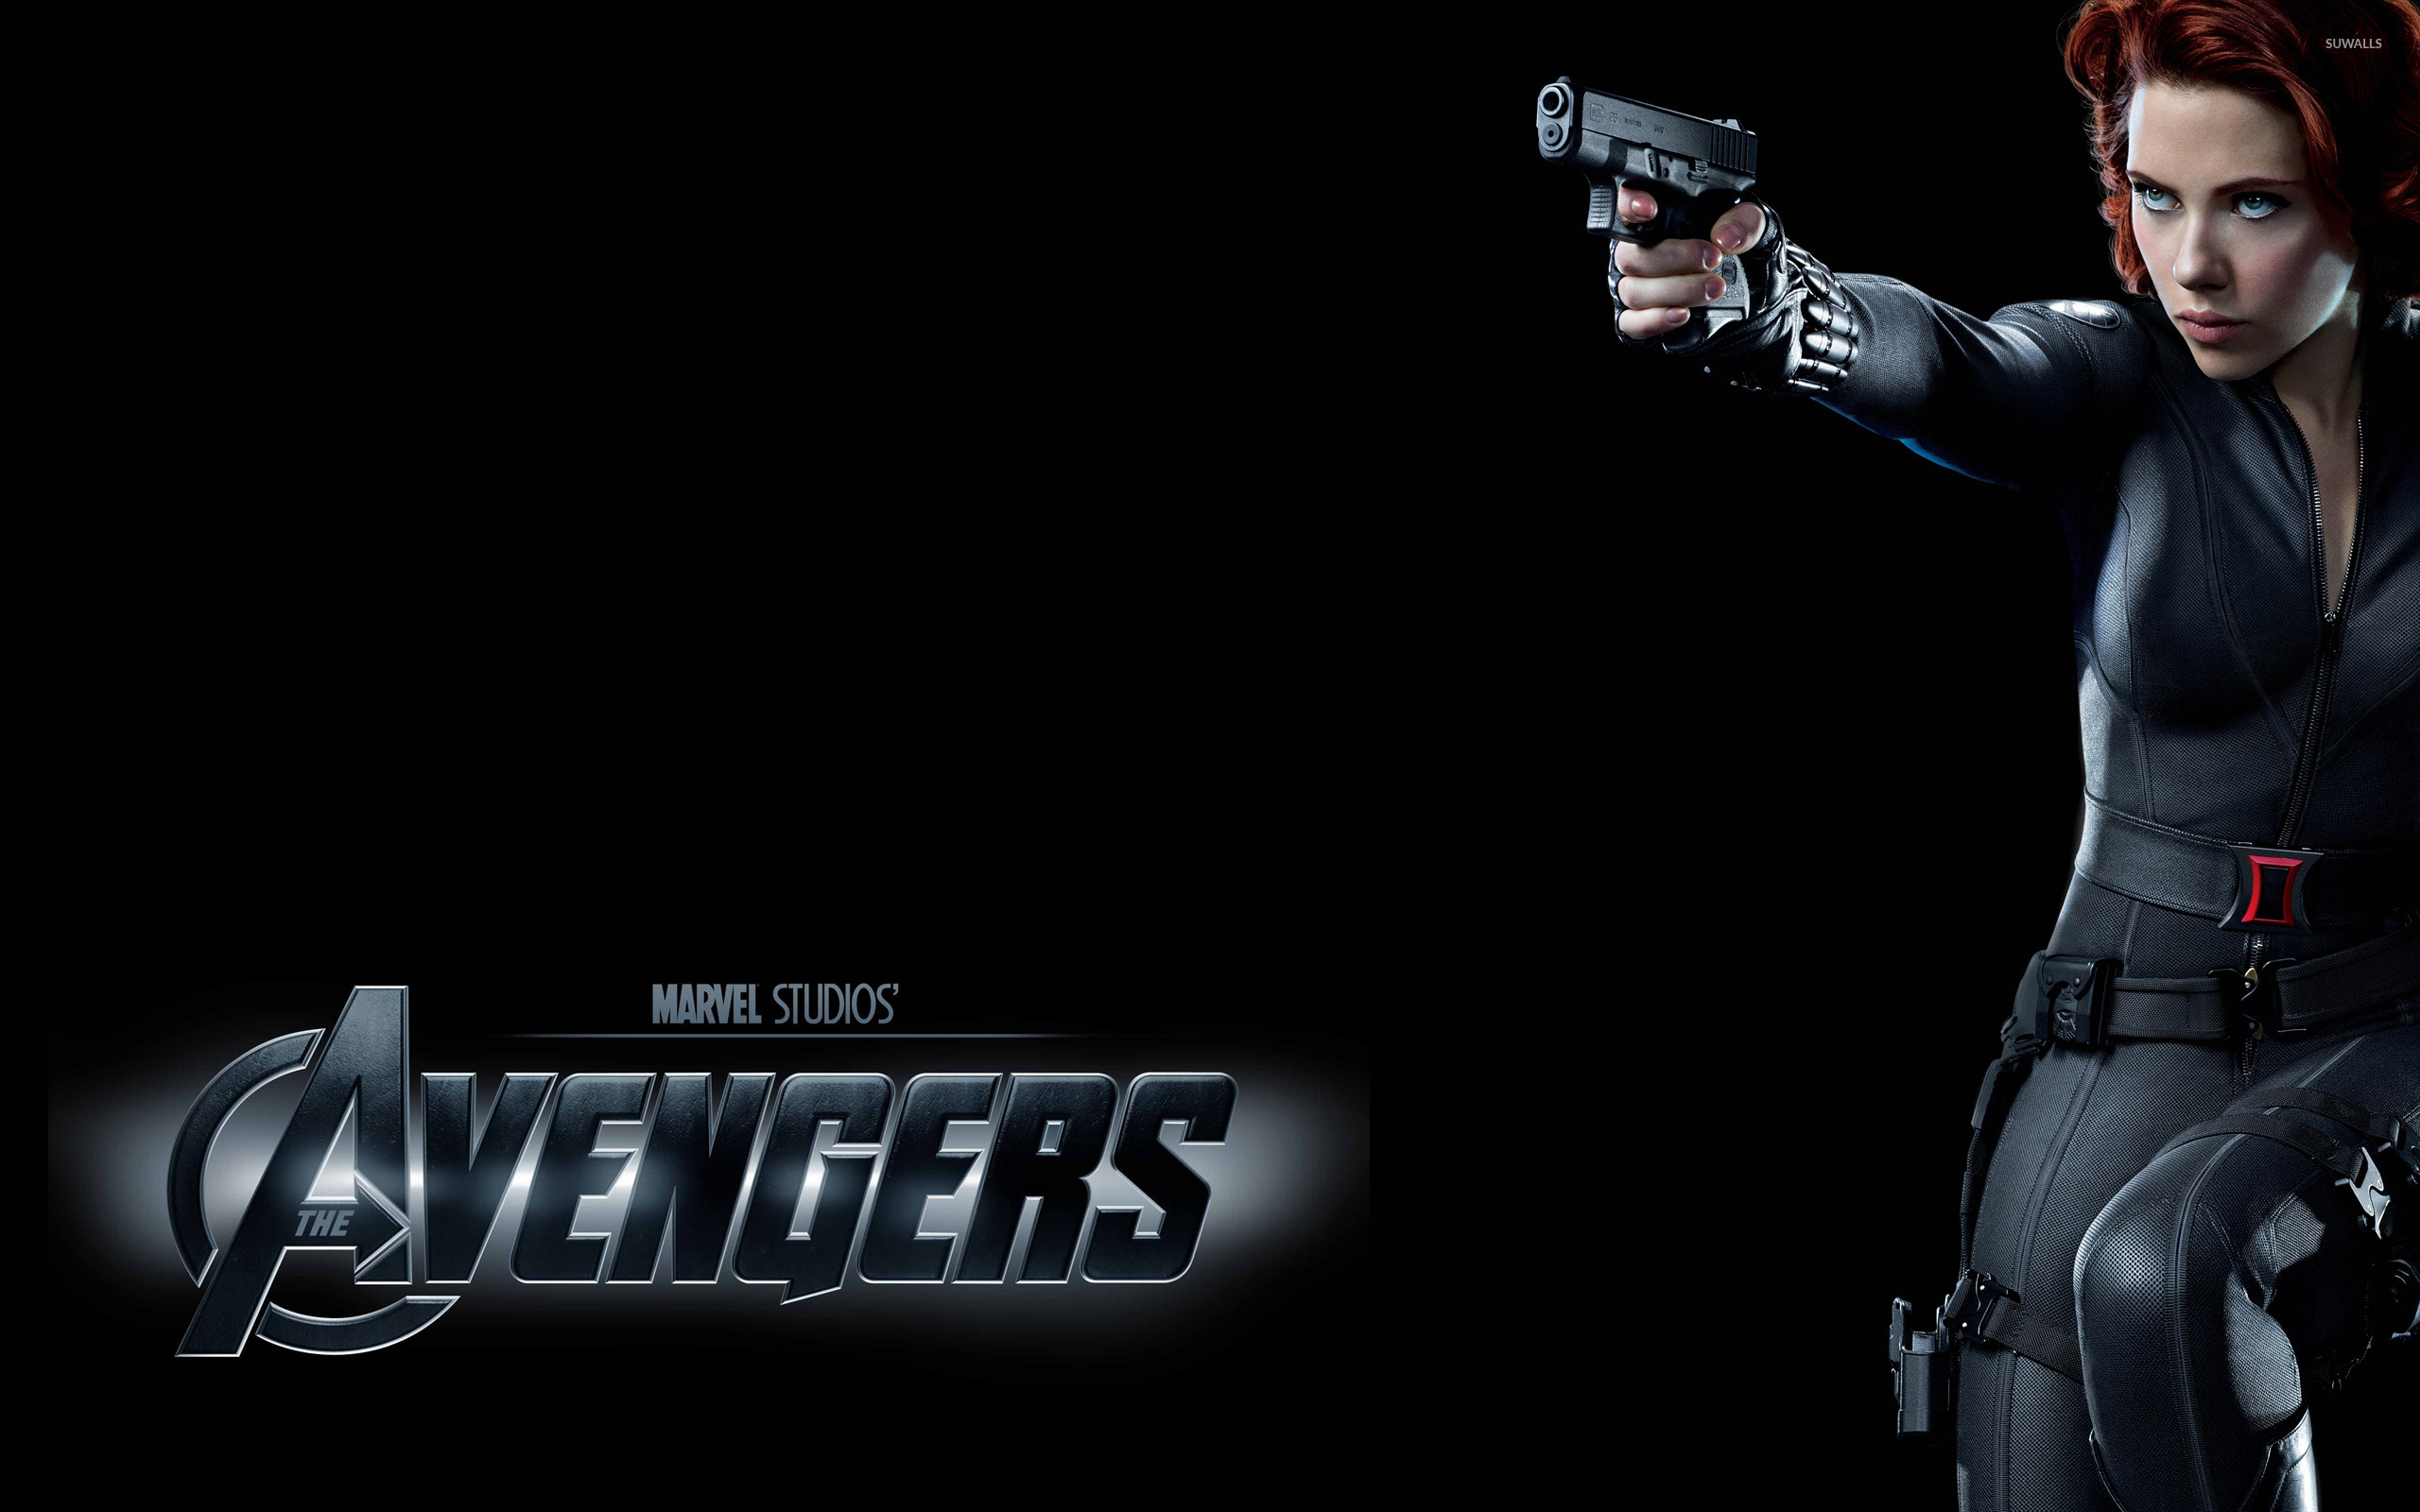 Black Widow The Avengers Wallpaper Movie Wallpapers 10843